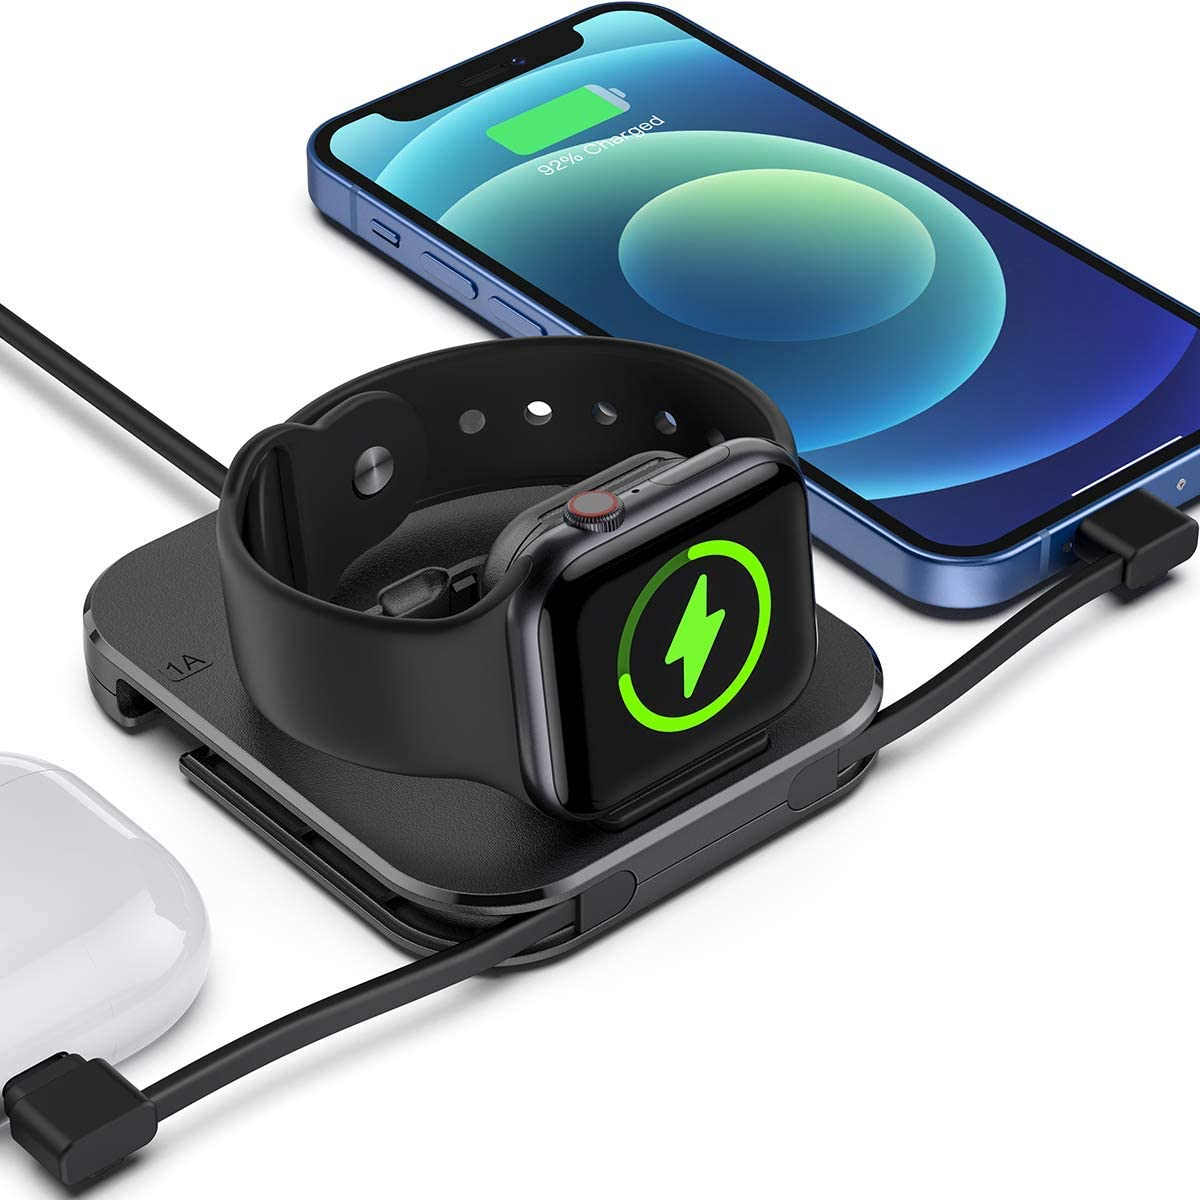 Tinetton Portable Charger Stand for Apple WatchCharger, Magnetic Wireless Watch Charging Stand Dockwith Charging Cable Compatible with Apple Watch SE/6/5/4 iPhone 12/11/8/Pro/Max Airpods/pro/1/2